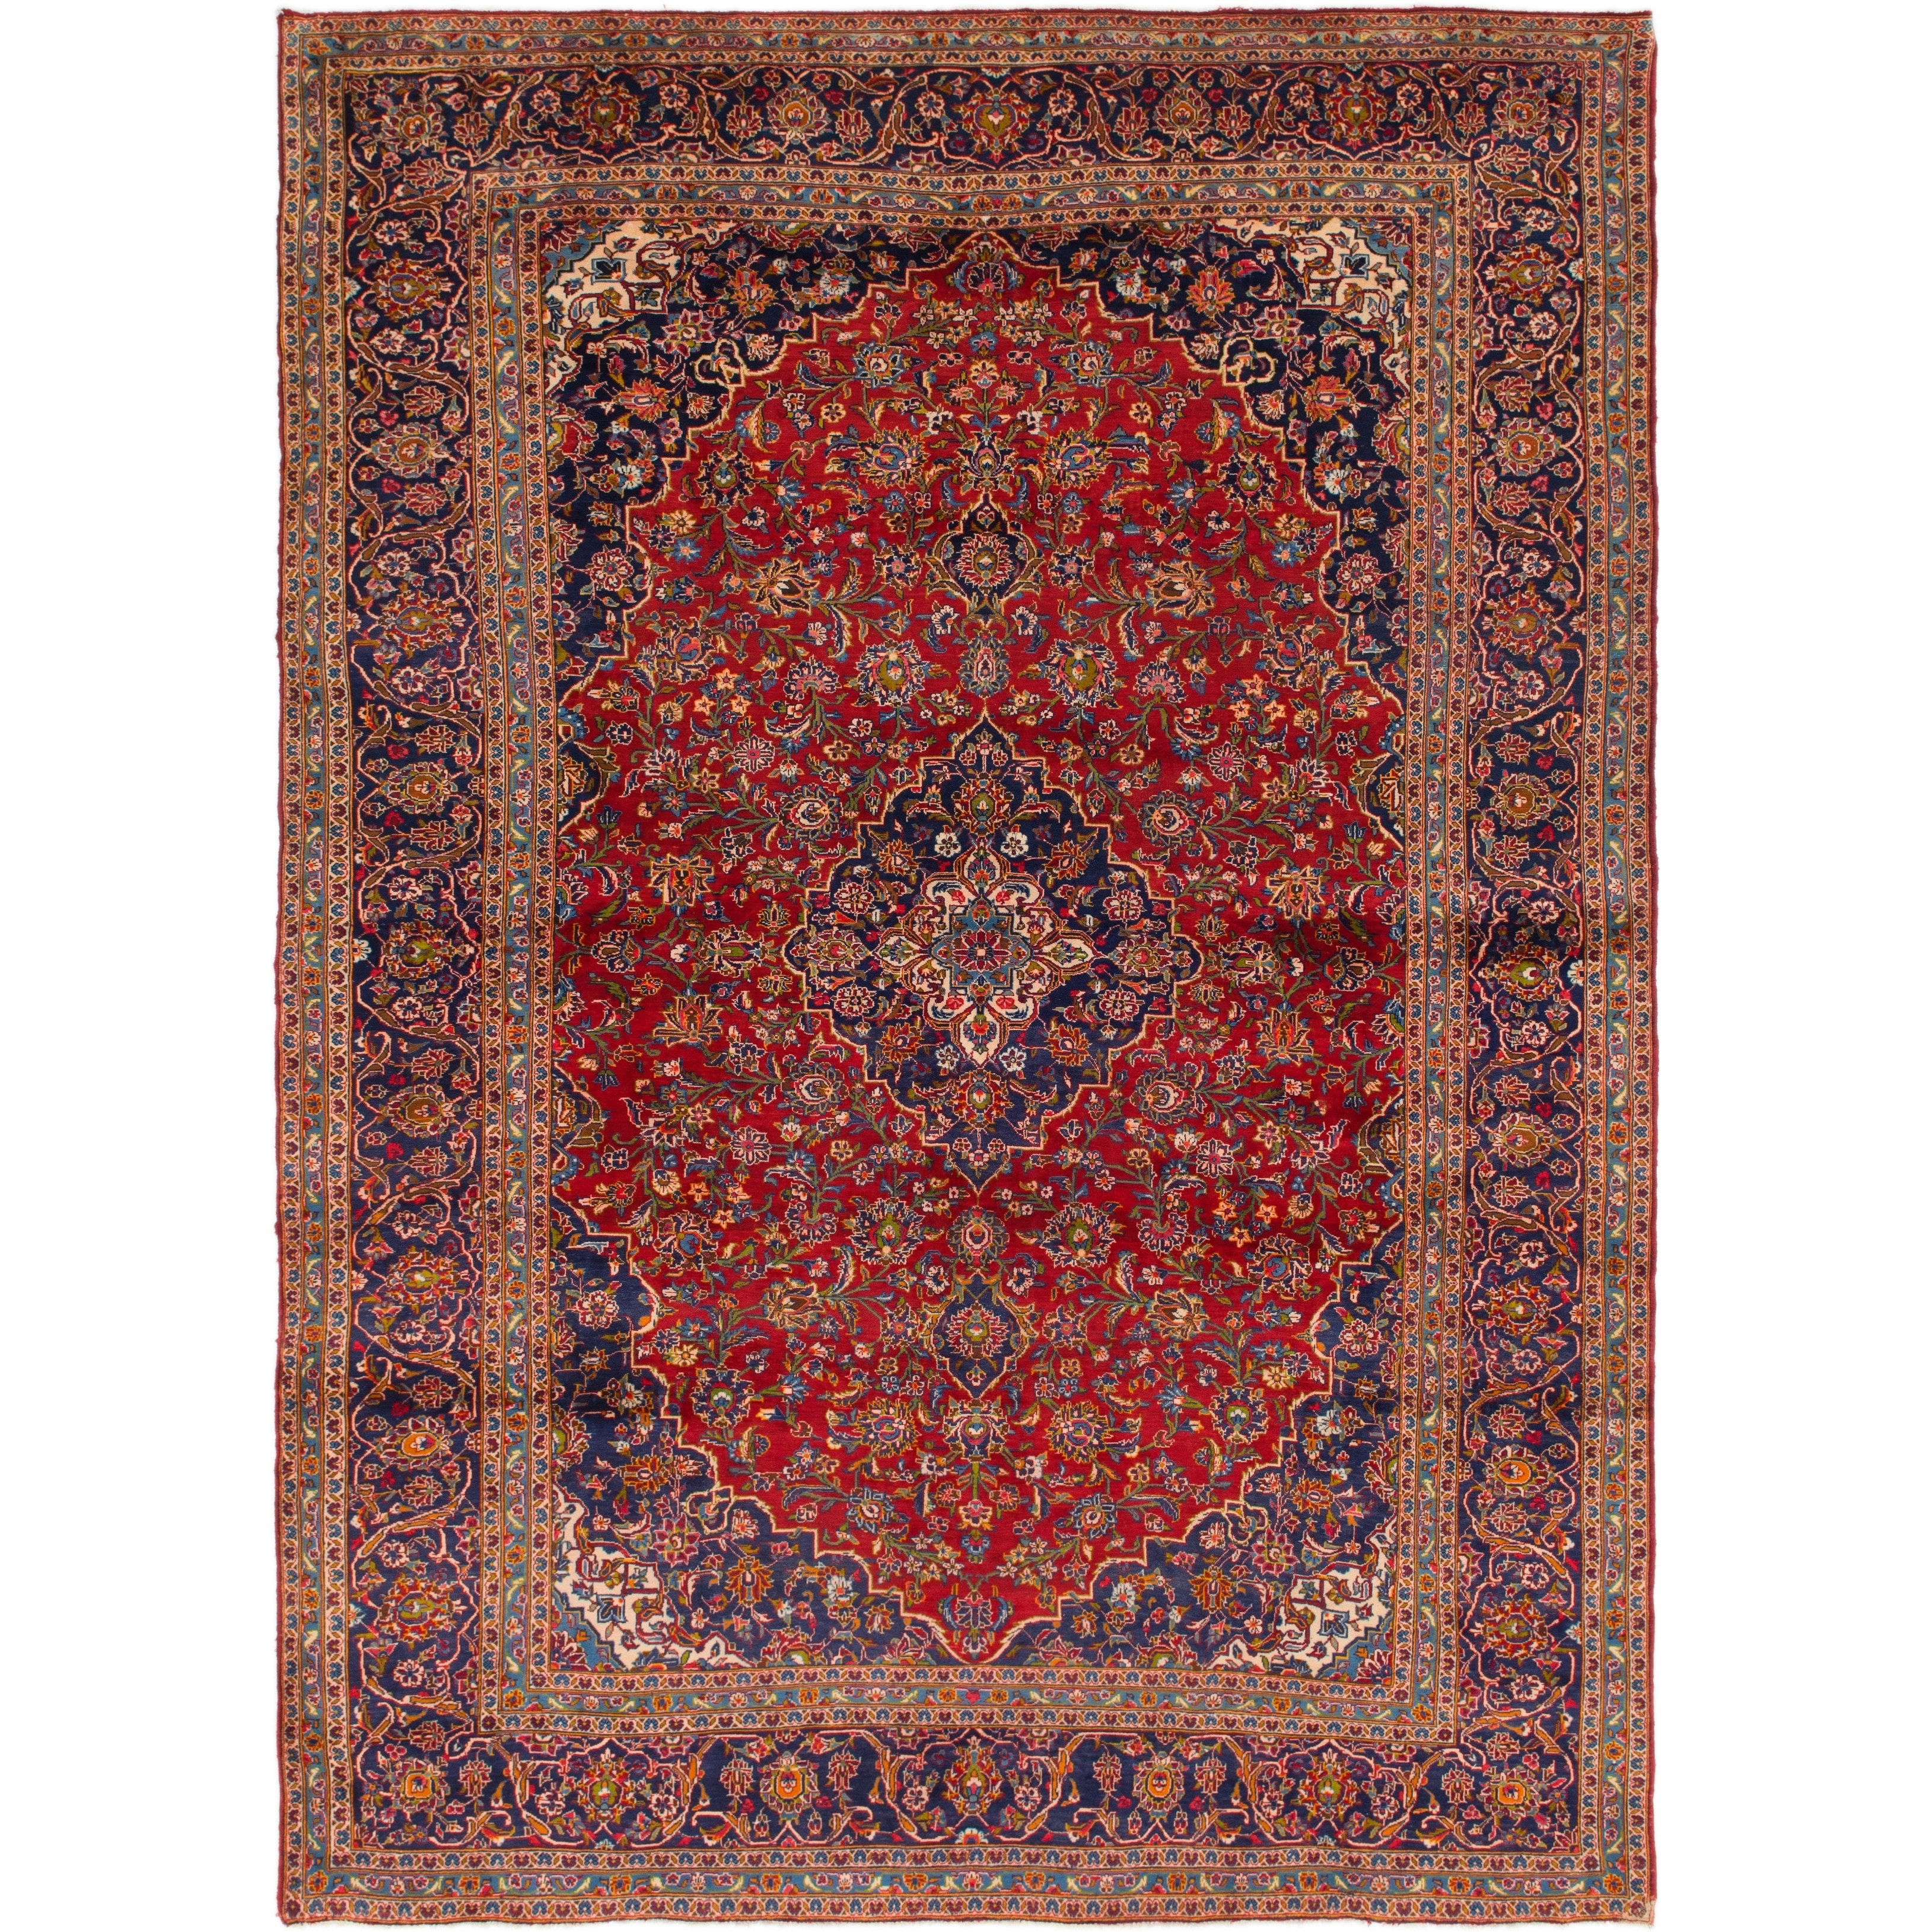 Hand Knotted Kashan Semi Antique Wool Area Rug - 9 9 x 13 6 (Red - 9 9 x 13 6)